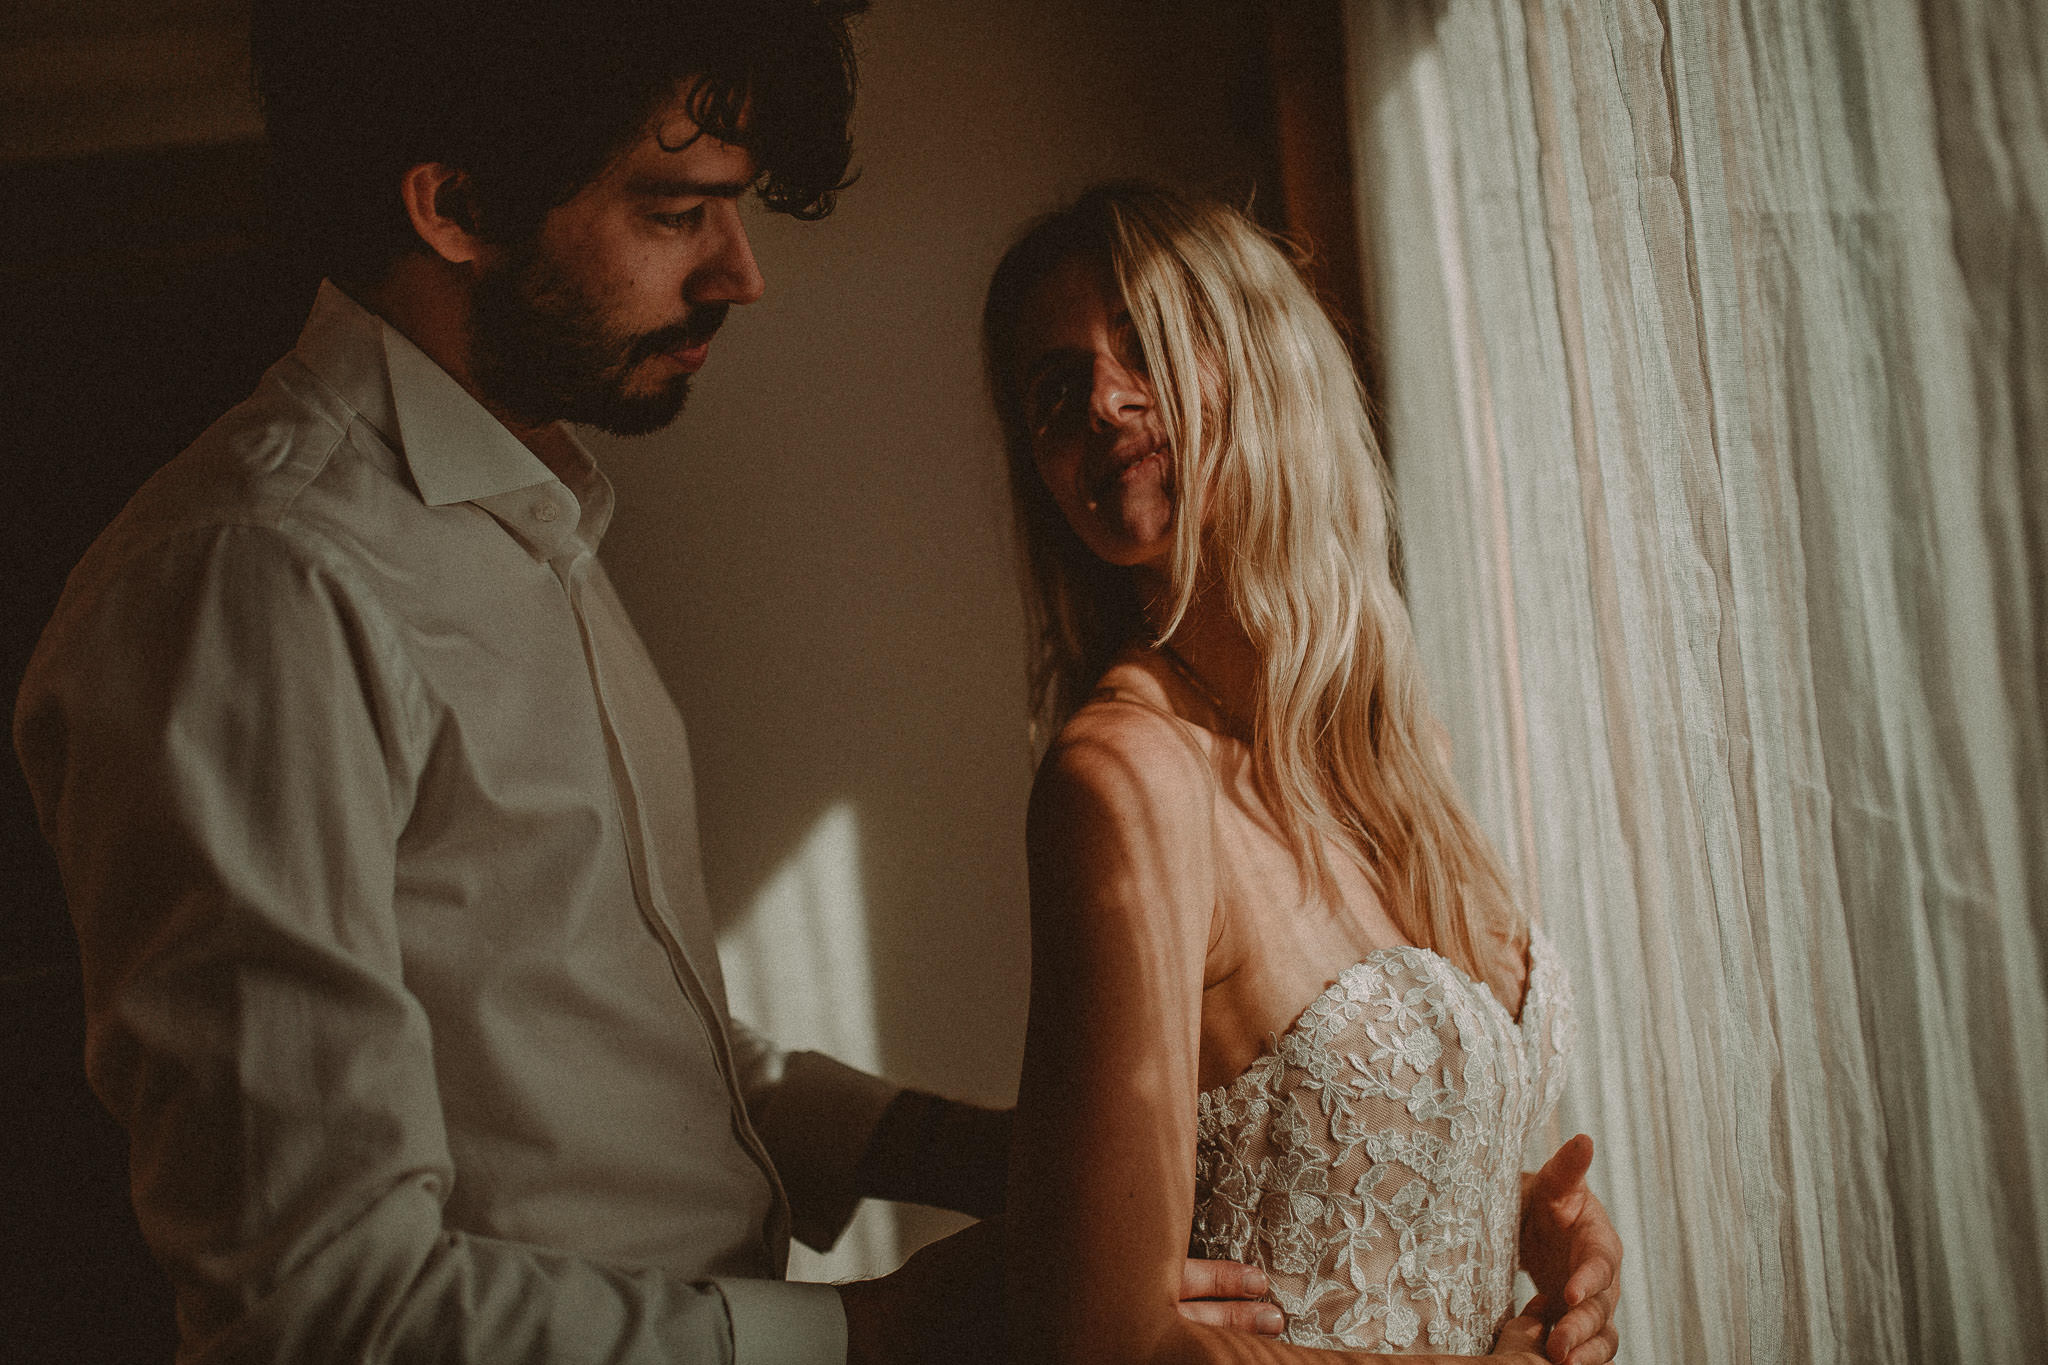 fine and intimate wedding photography from Berlin